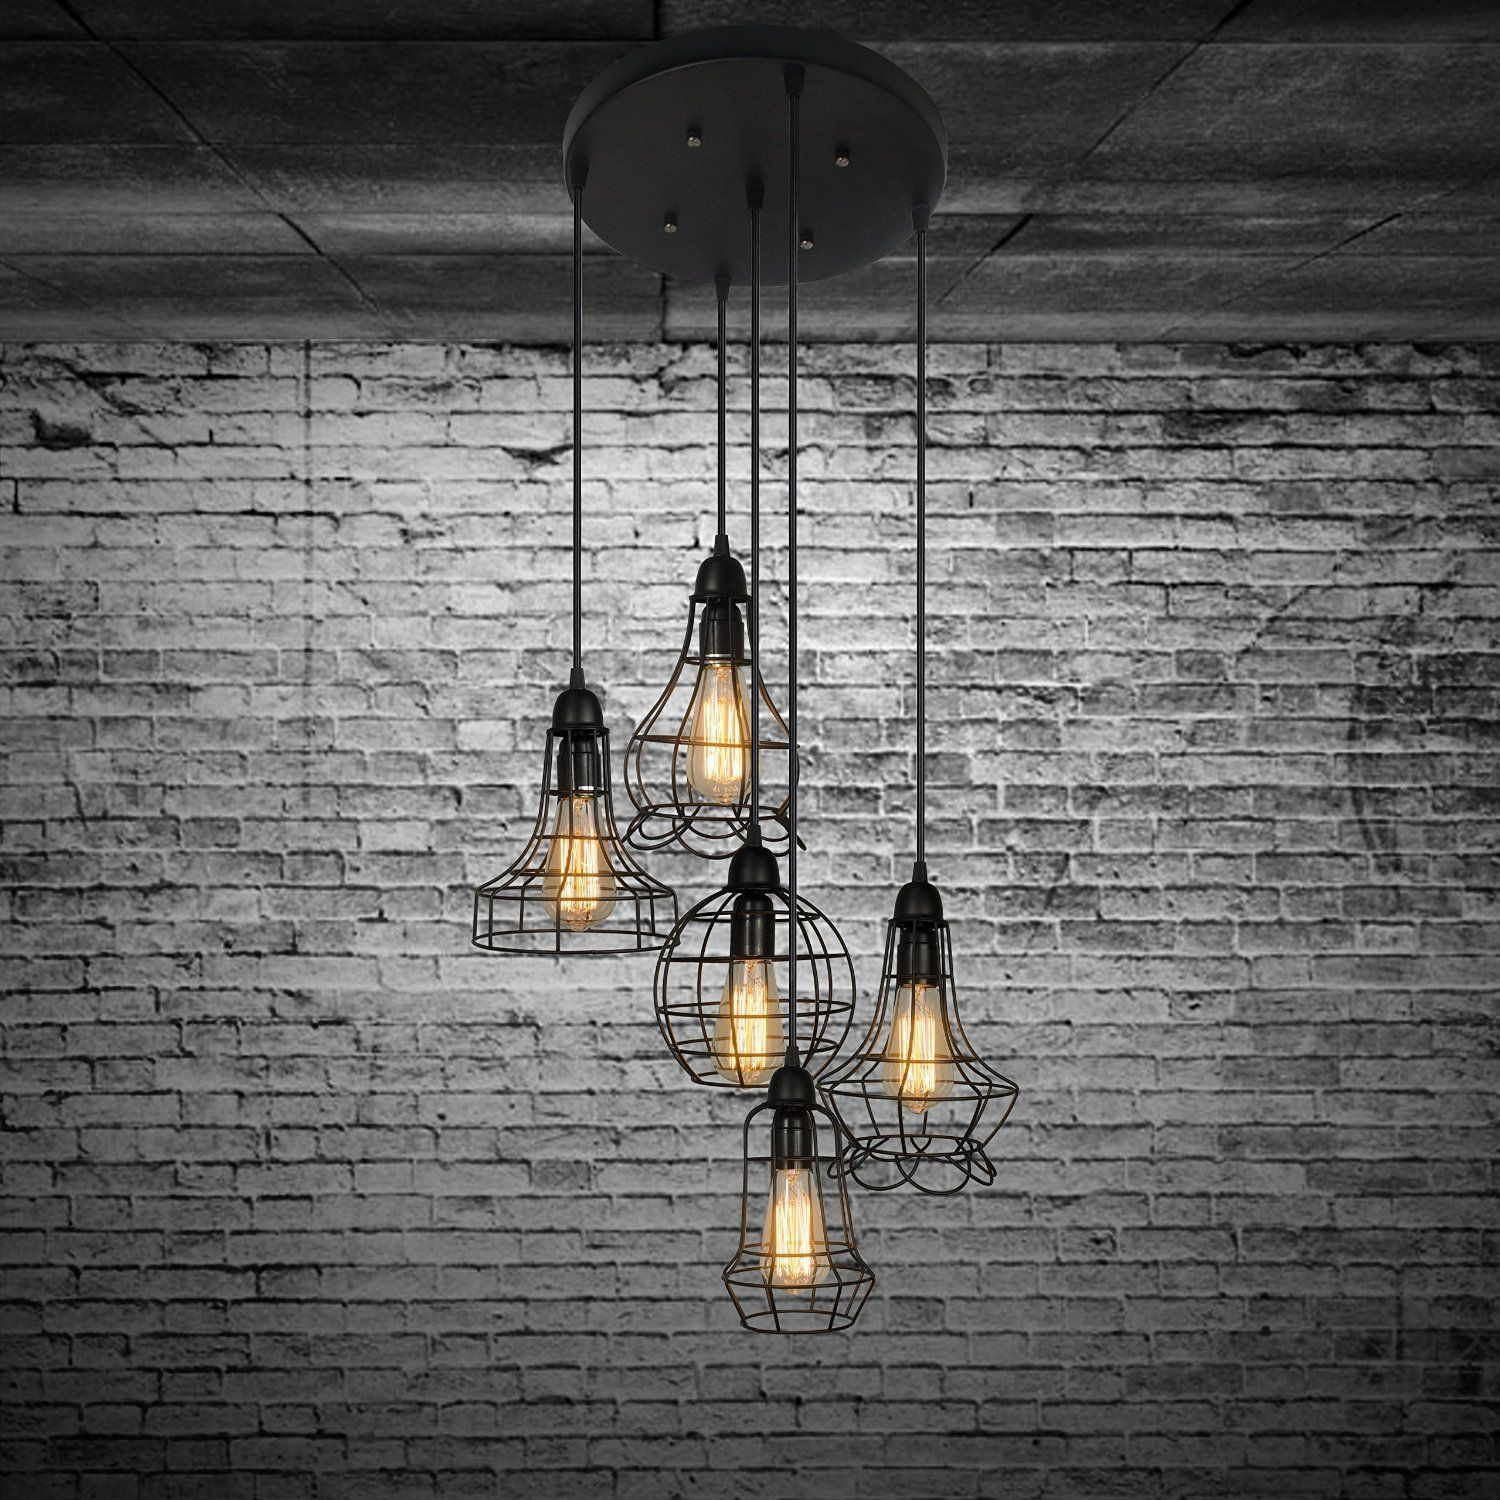 Industrial Set of Cage Lighting Fixture - LITFAD Rustic Barn Metal Chandelier Max 200w with 5 Cage Lights Black Finish, Pendant Light: Amazon.ca: Tools & Home Improvement